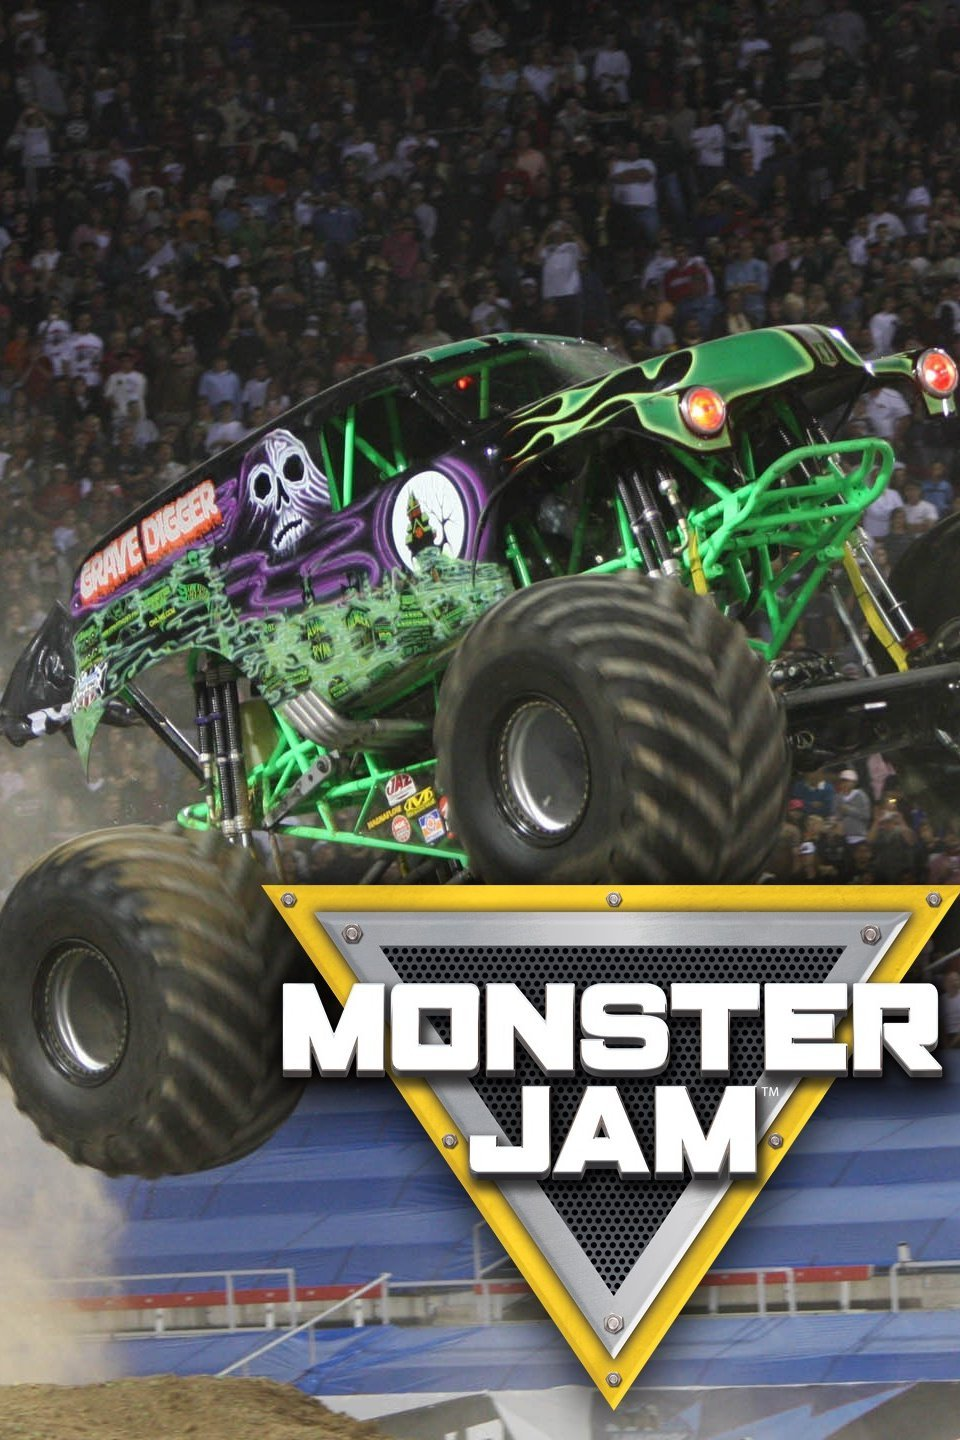 Monster Jams sheet music - Marching Band sheet music by Michael Sweeney; Paul Lavender; Paul Murtha: Hal Leonard. Shop the World's Largest Sheet Music Selection today at Sheet Music Plus.